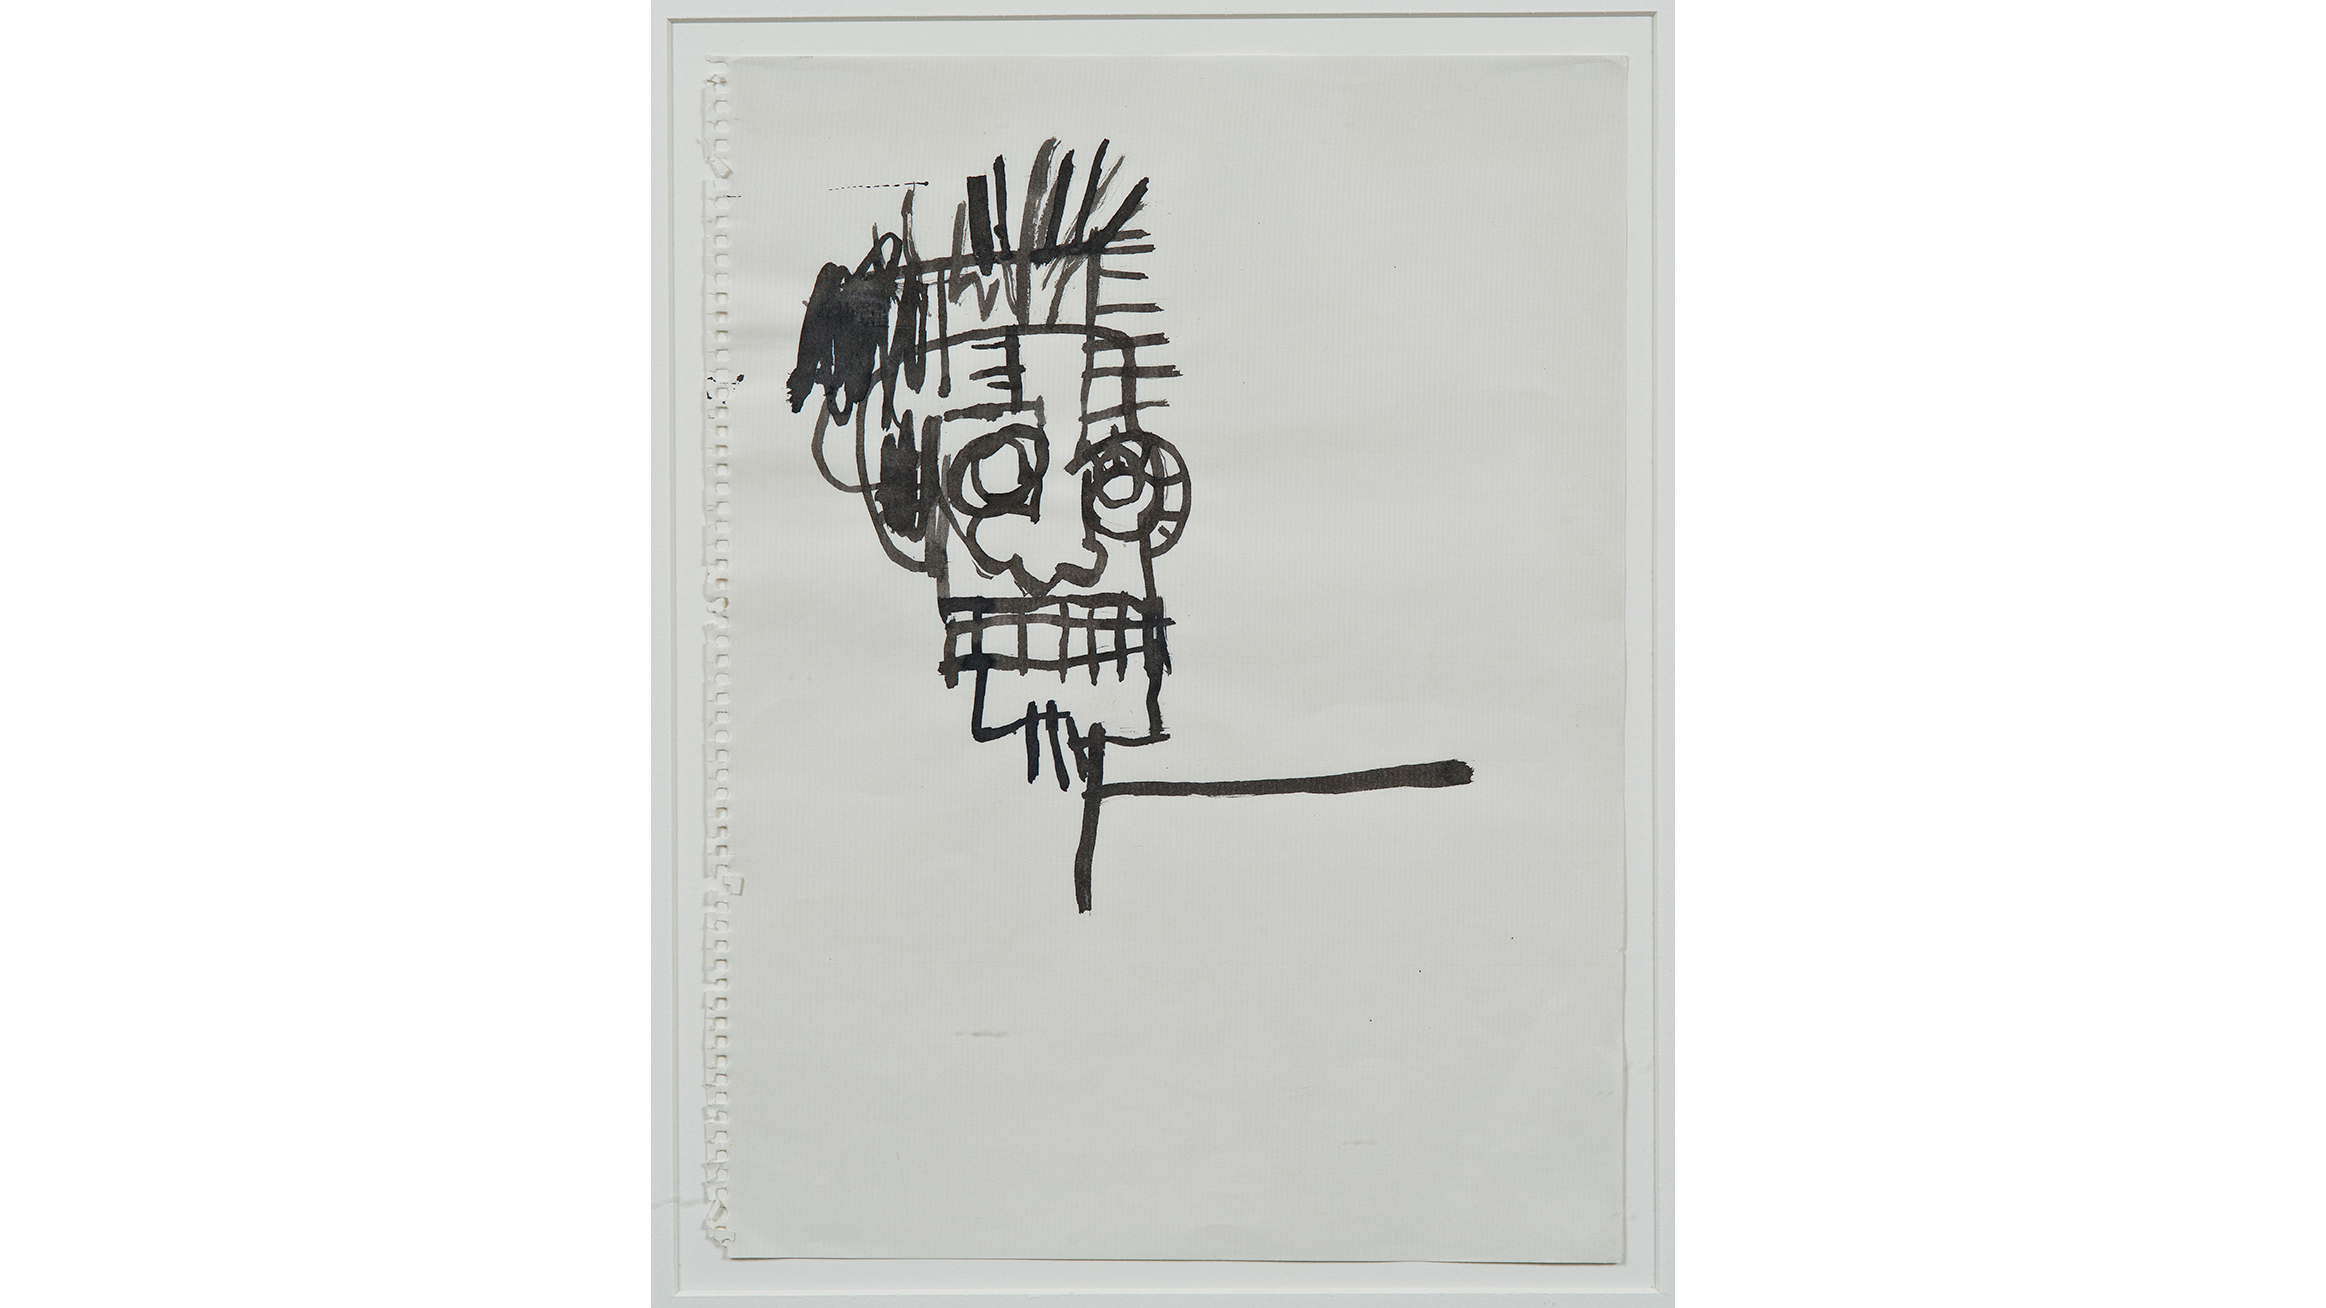 Jean-Michel Basquiat (American, 1960–1988). Untitled (Ink drawing), 1981. Sumi ink on paper, 12 x 9 in. (30.5 x 22.9 cm).